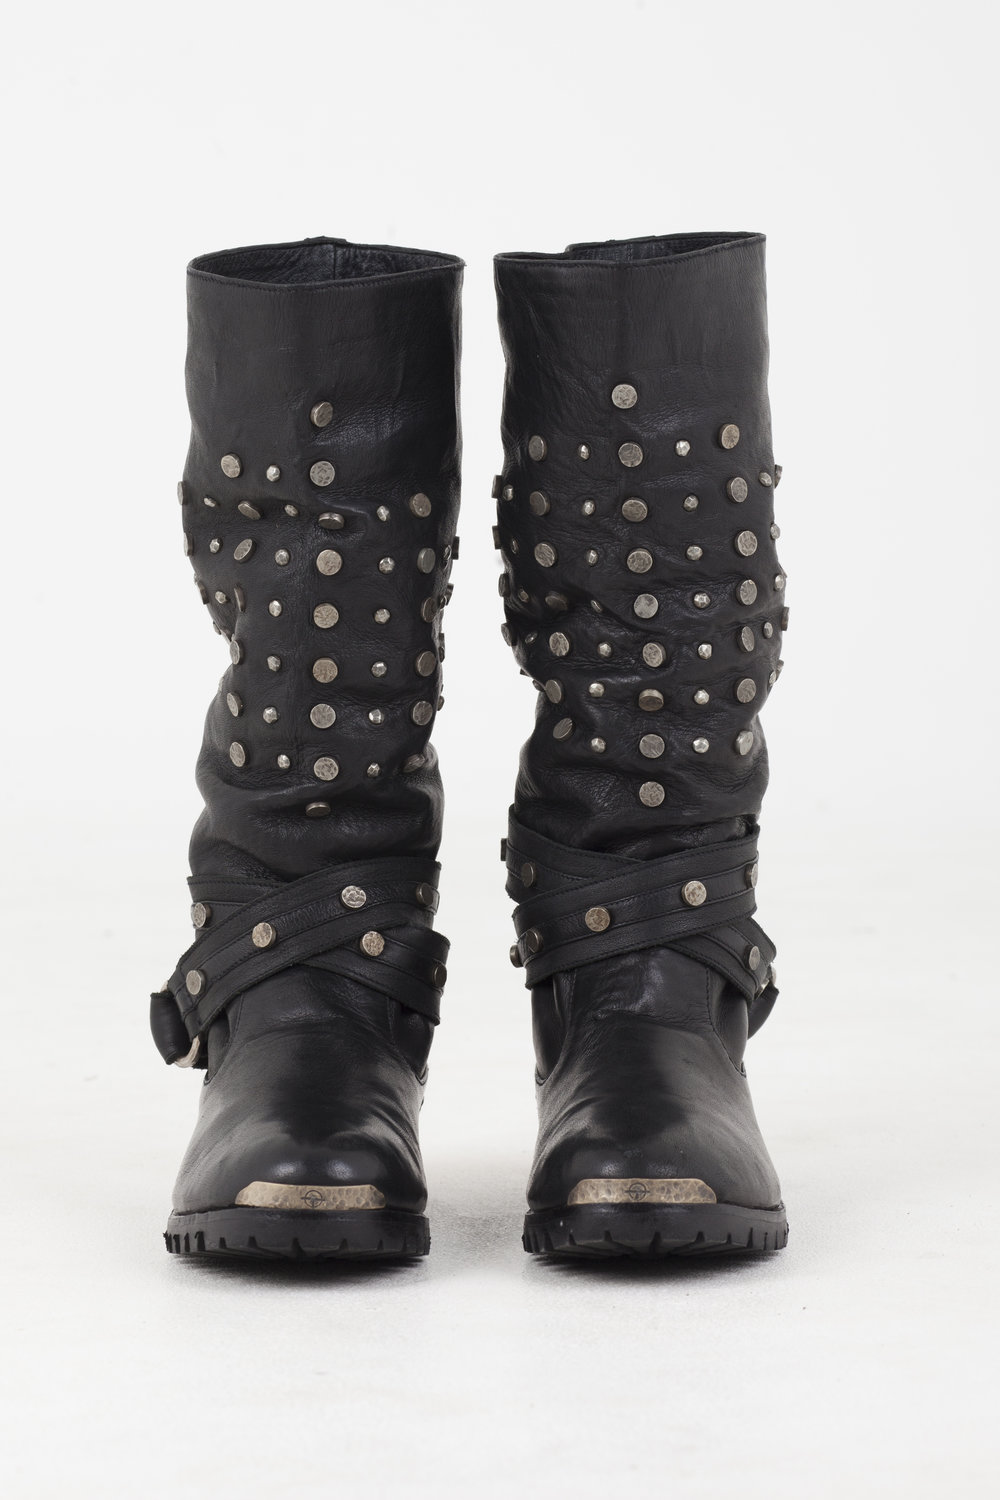 agoraphobia-collective-defiant-disorder-designer-over-high-boots